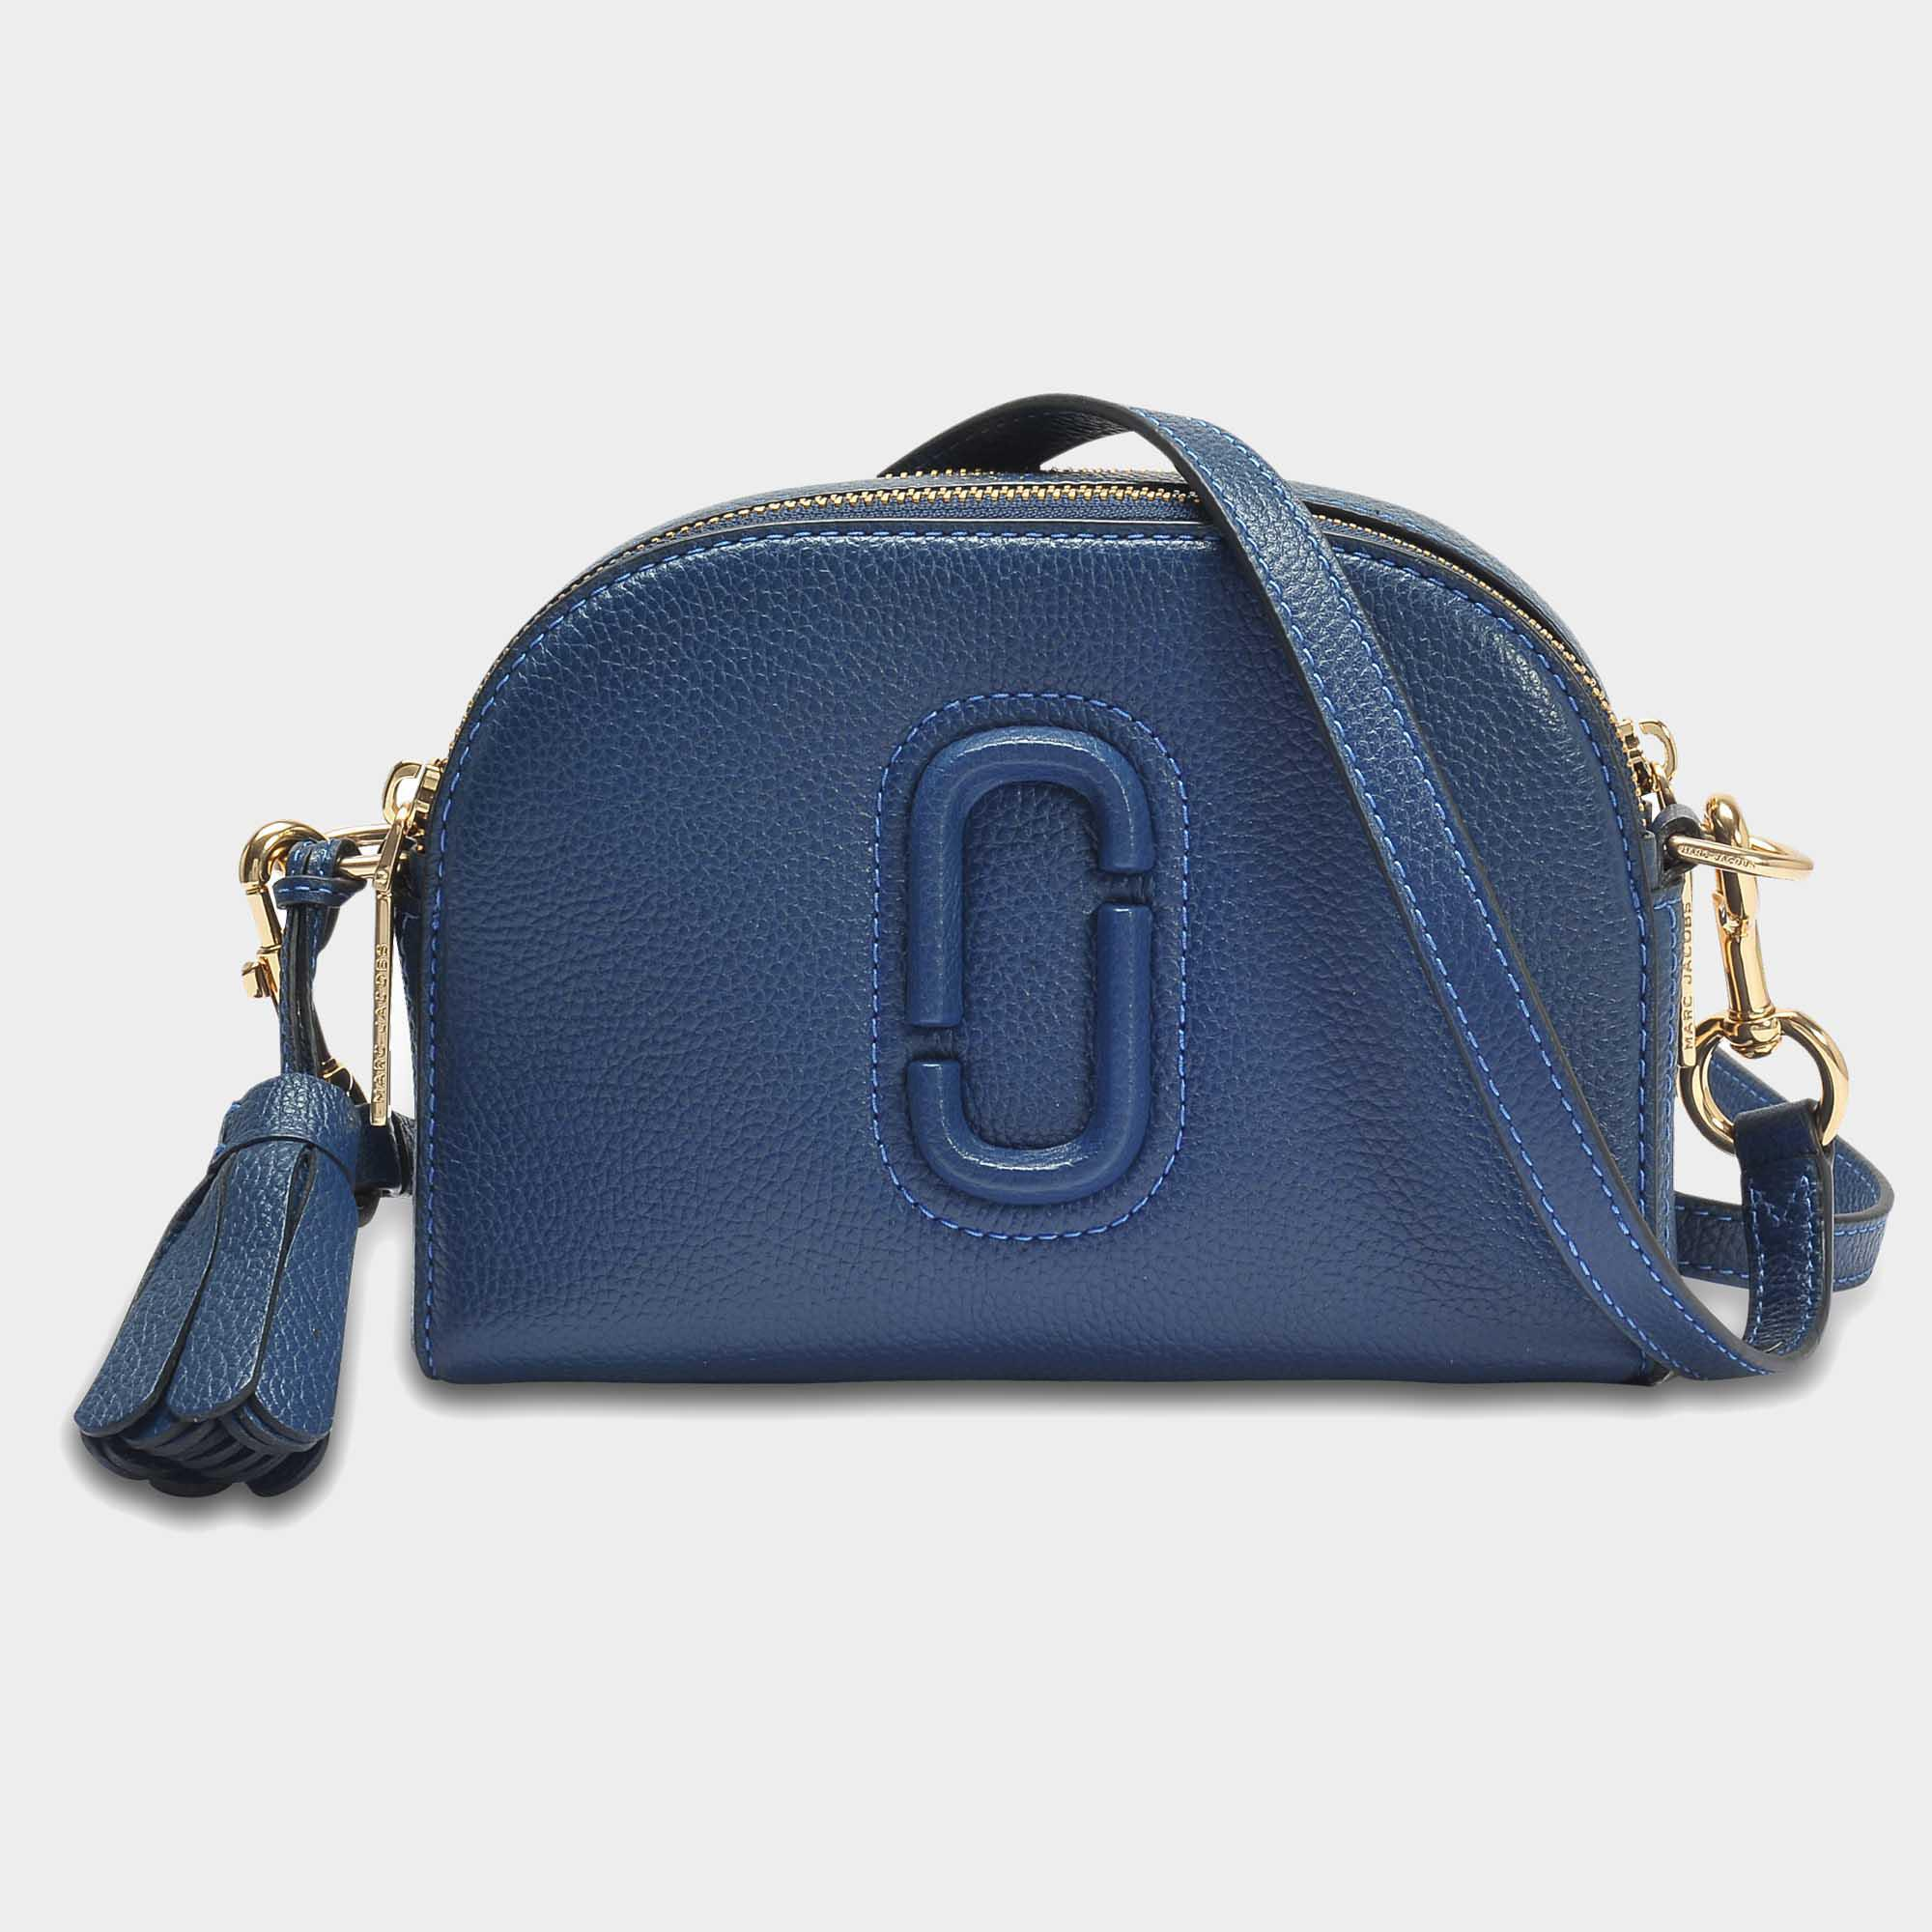 d7bc4aee3c3 Lyst - Marc Jacobs Shutter Bag In Blue Calfskin in Blue - Save 29%